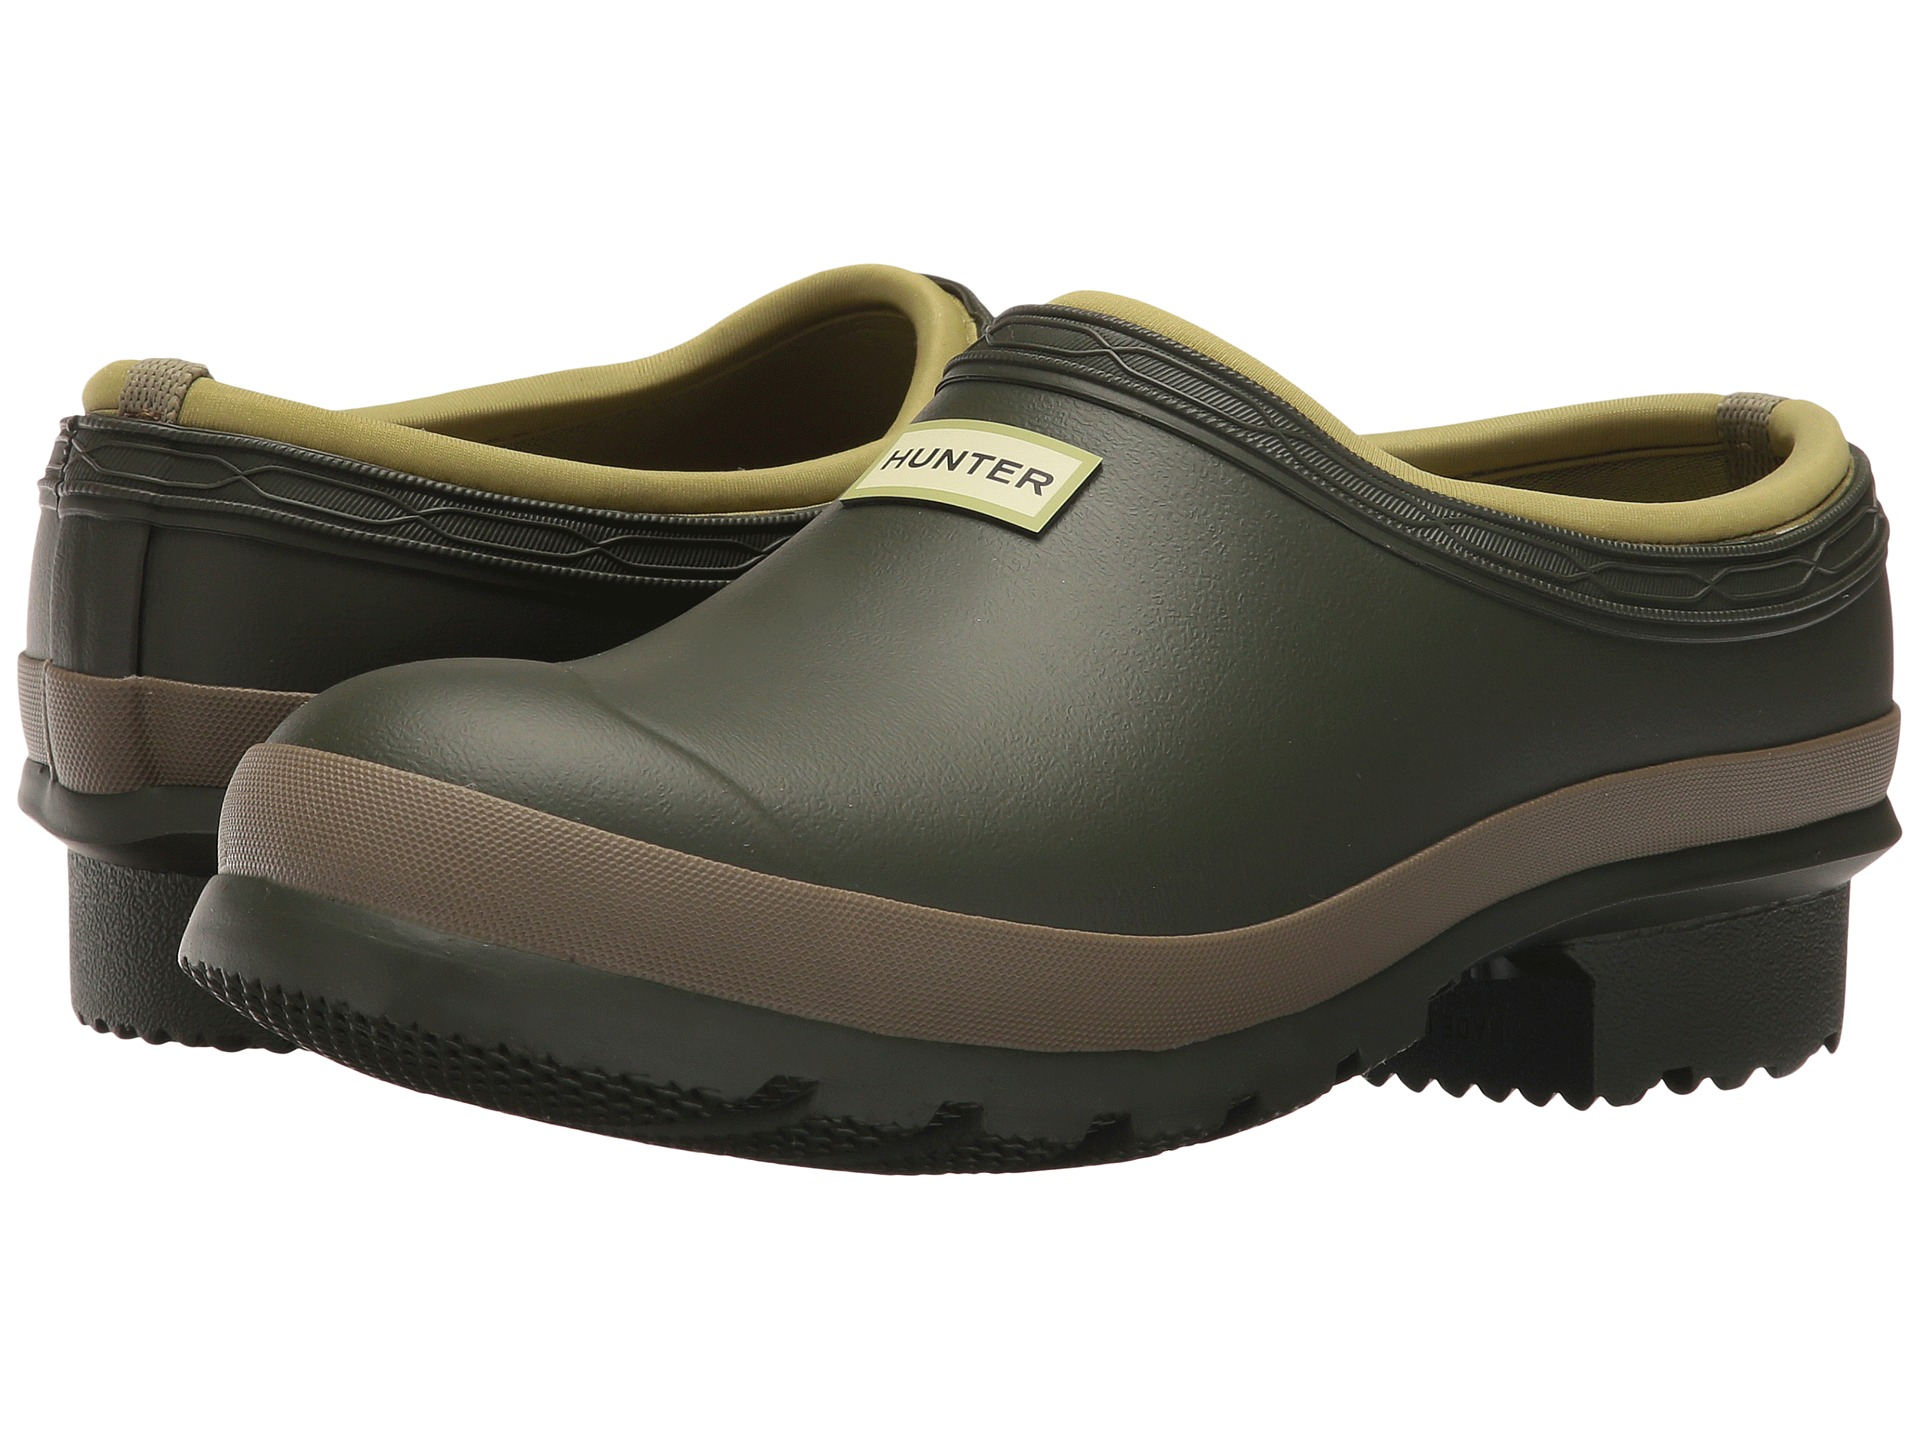 Hunter Garden Clog Zapposcom Free Shipping BOTH Ways